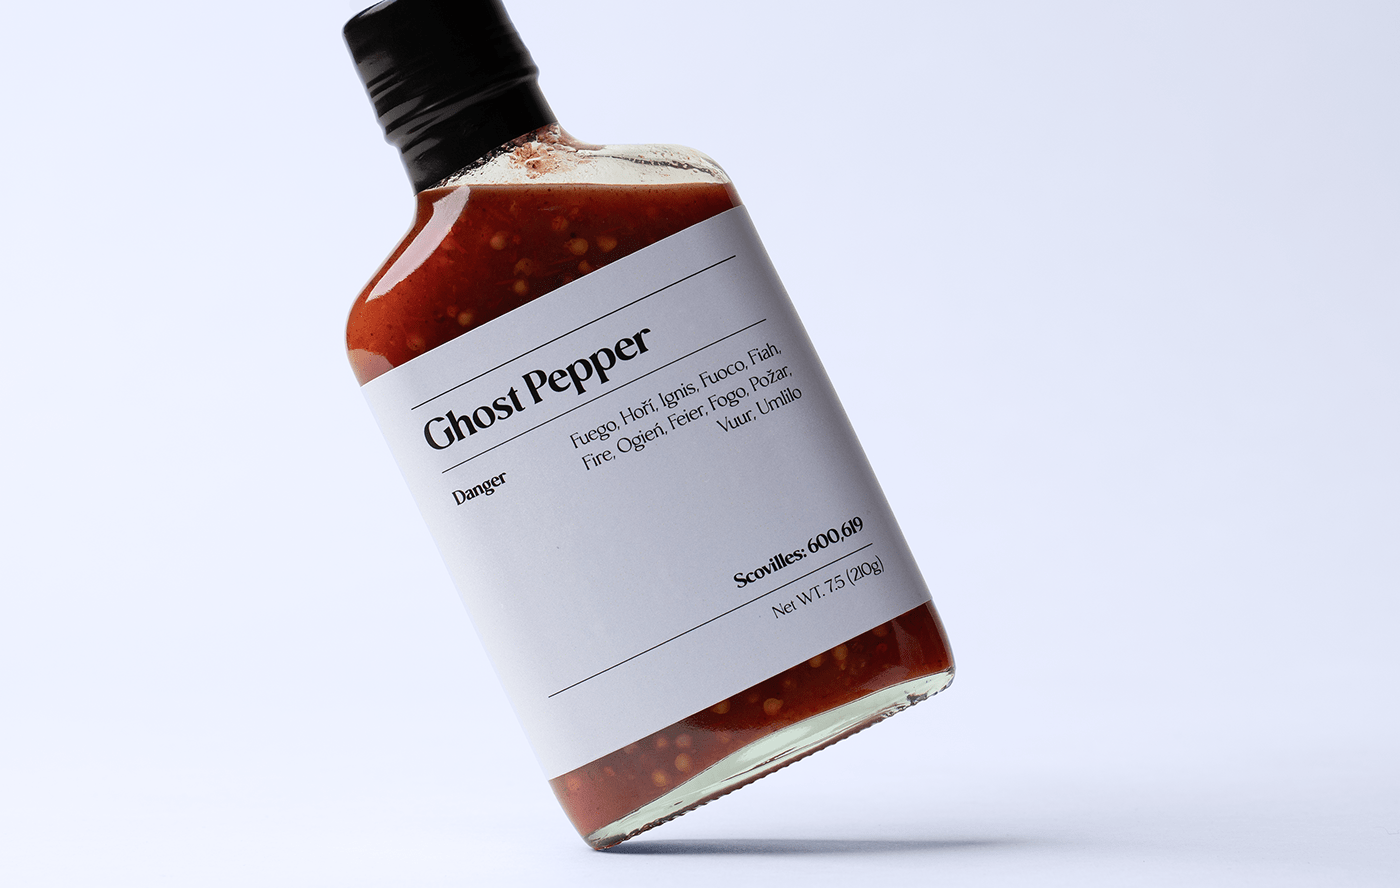 ghost pepper bottle product photography